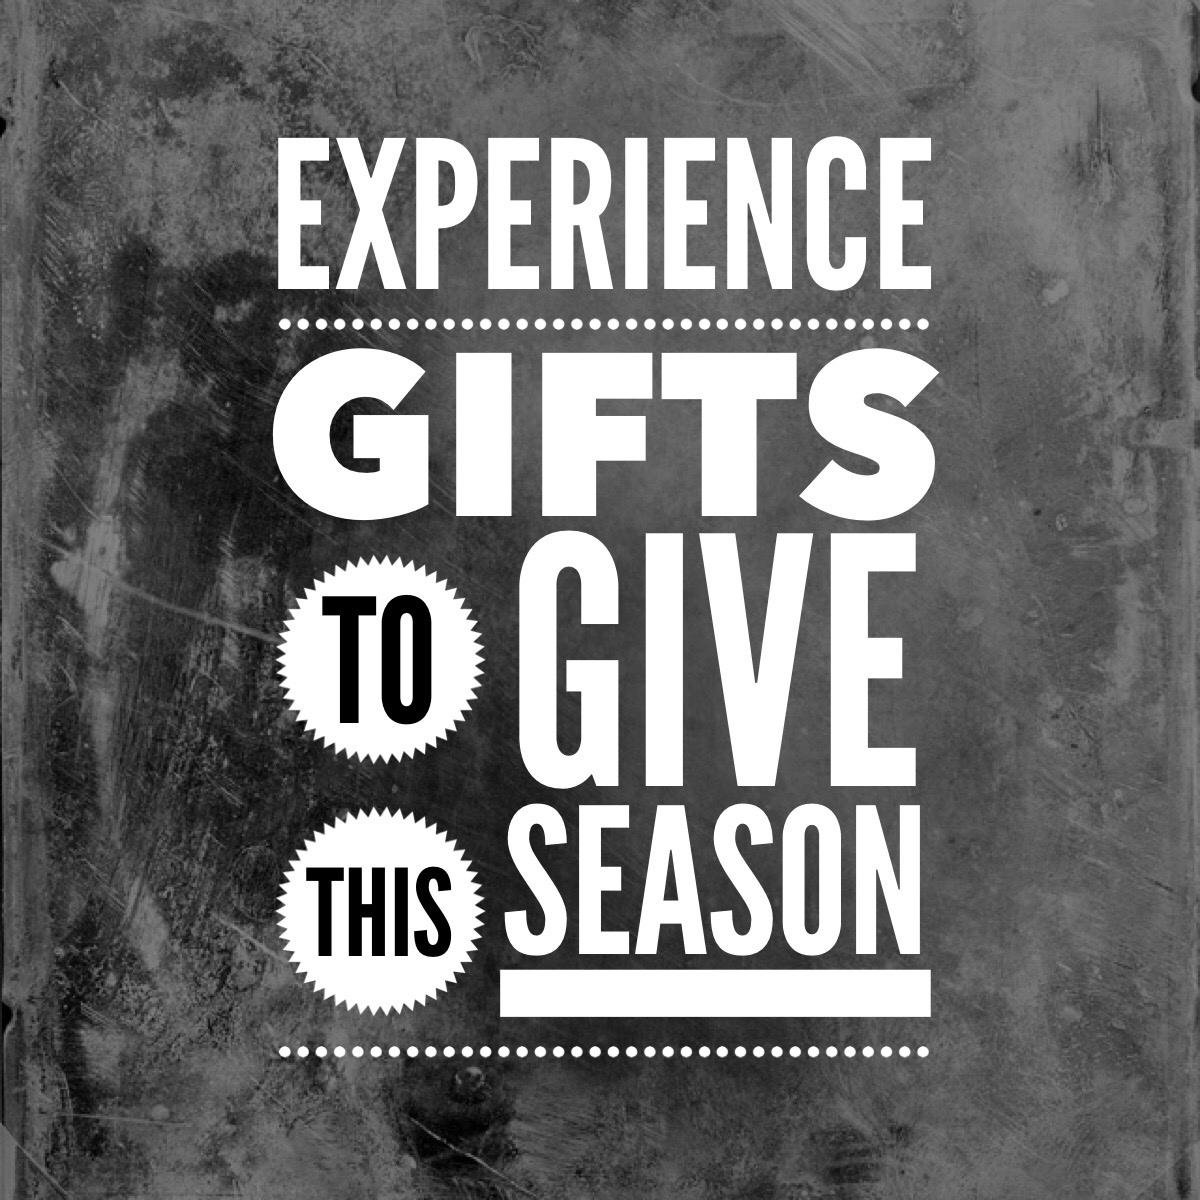 experience gifts to give this season